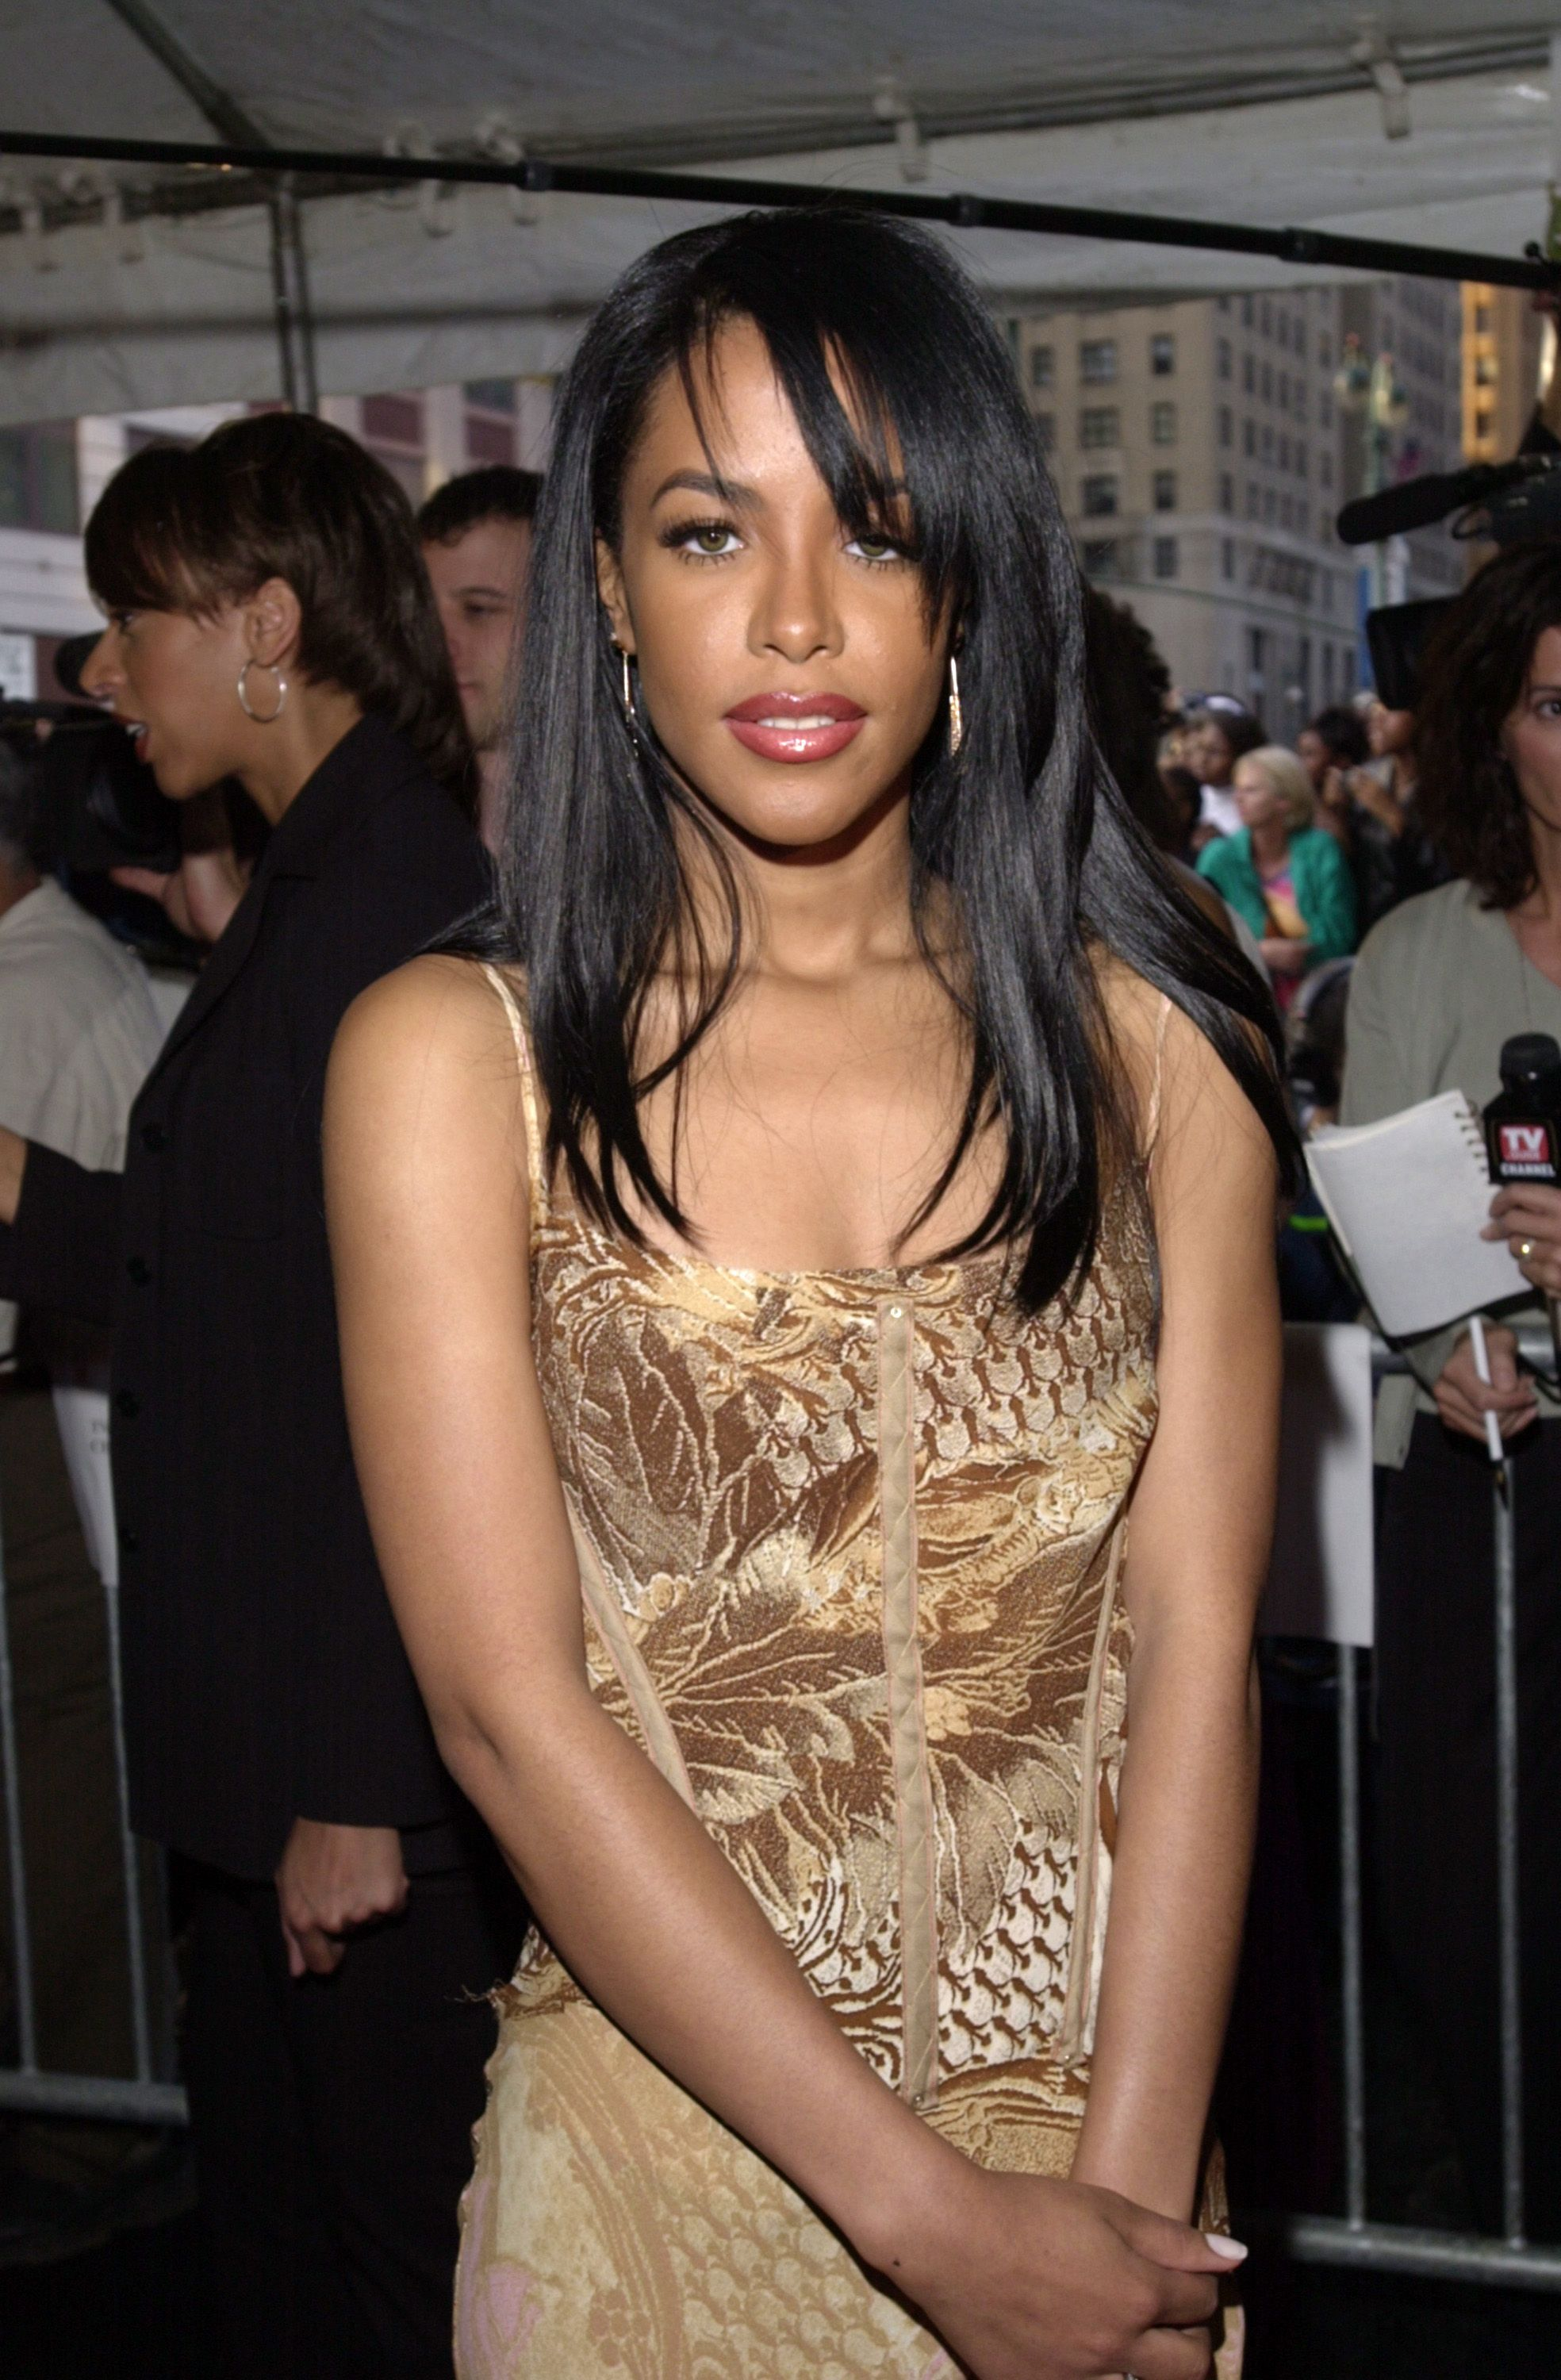 Aaliyah Hairstyle : aaliyah, hairstyle, Facts, About, Aaliyah, Aaliyah's, Secret, Moments